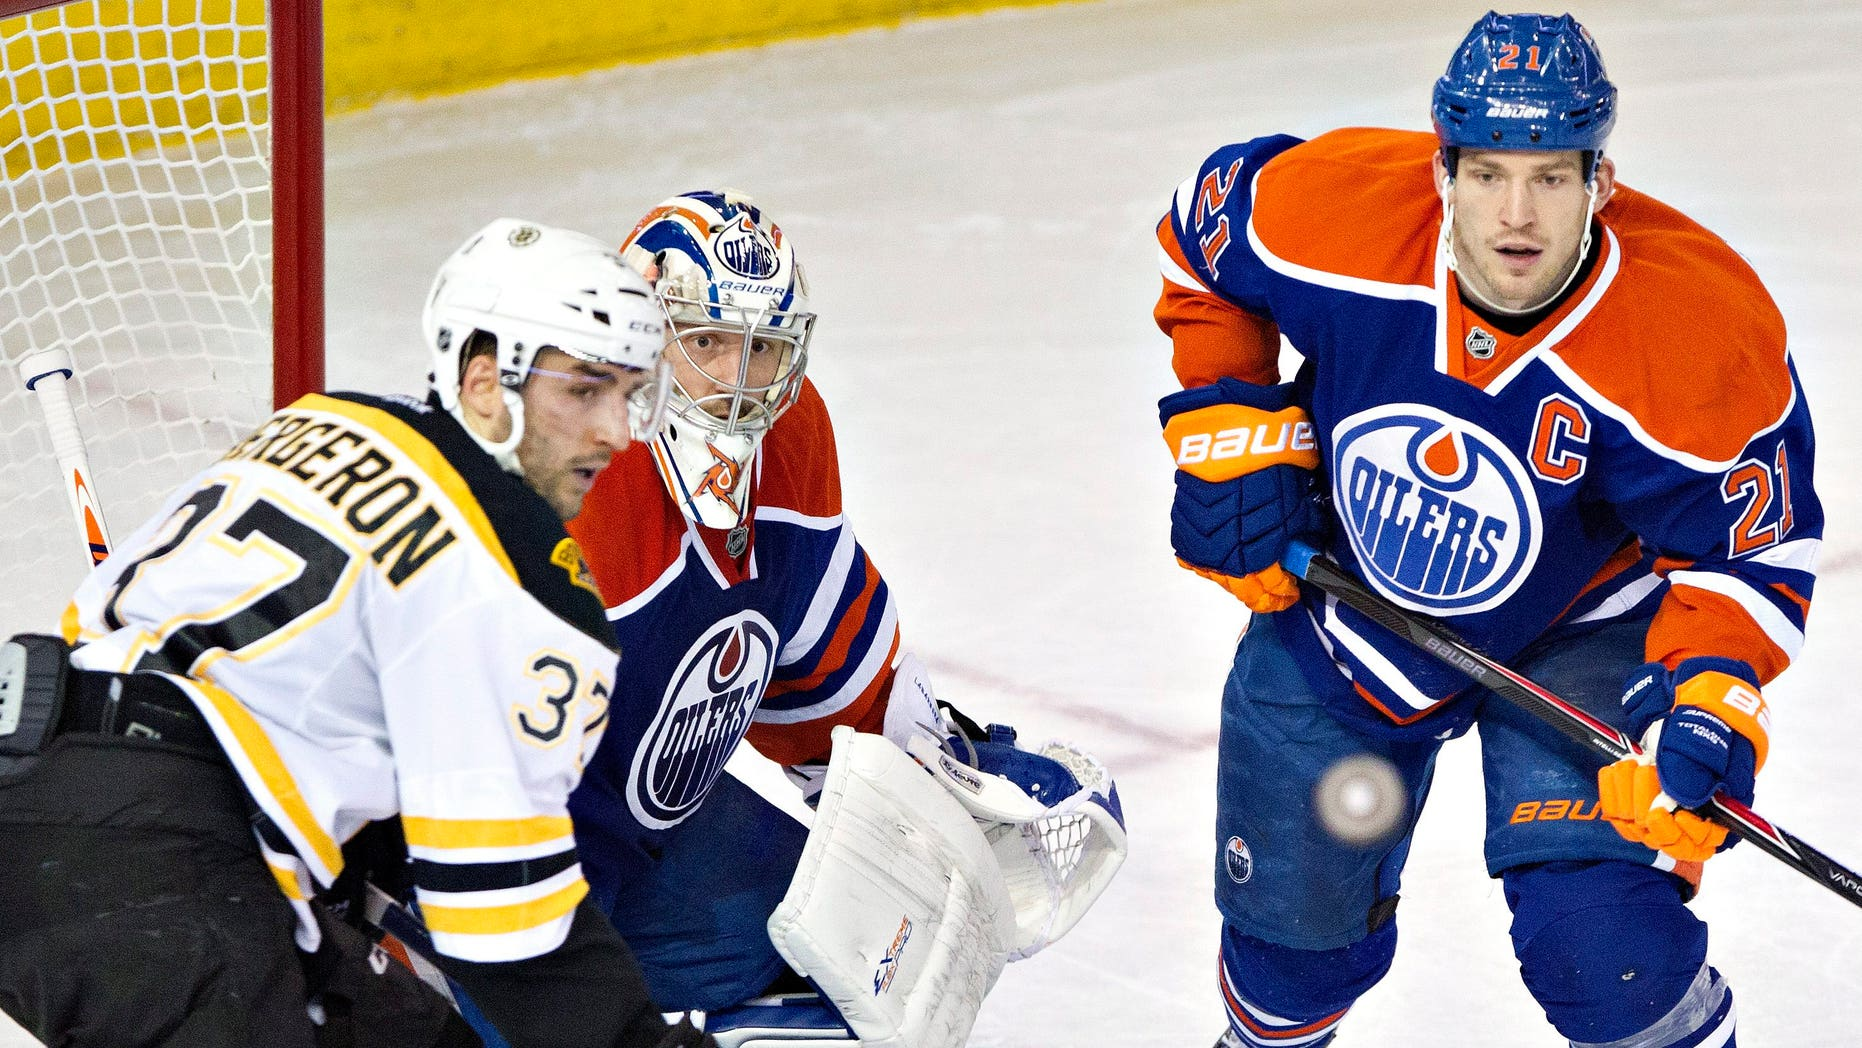 Boston Bruins' Patrice Bergeron (37), Edmonton Oilers goalie Jason LaBarbera (1) and Oilers' Andrew Ference (21) look for the rebound  during the second period of an NHL hockey game, Thursday, Dec. 12, 2013 in Edmonton, Alberta. (AP Photo/The Canadian Press, Jason Franson)